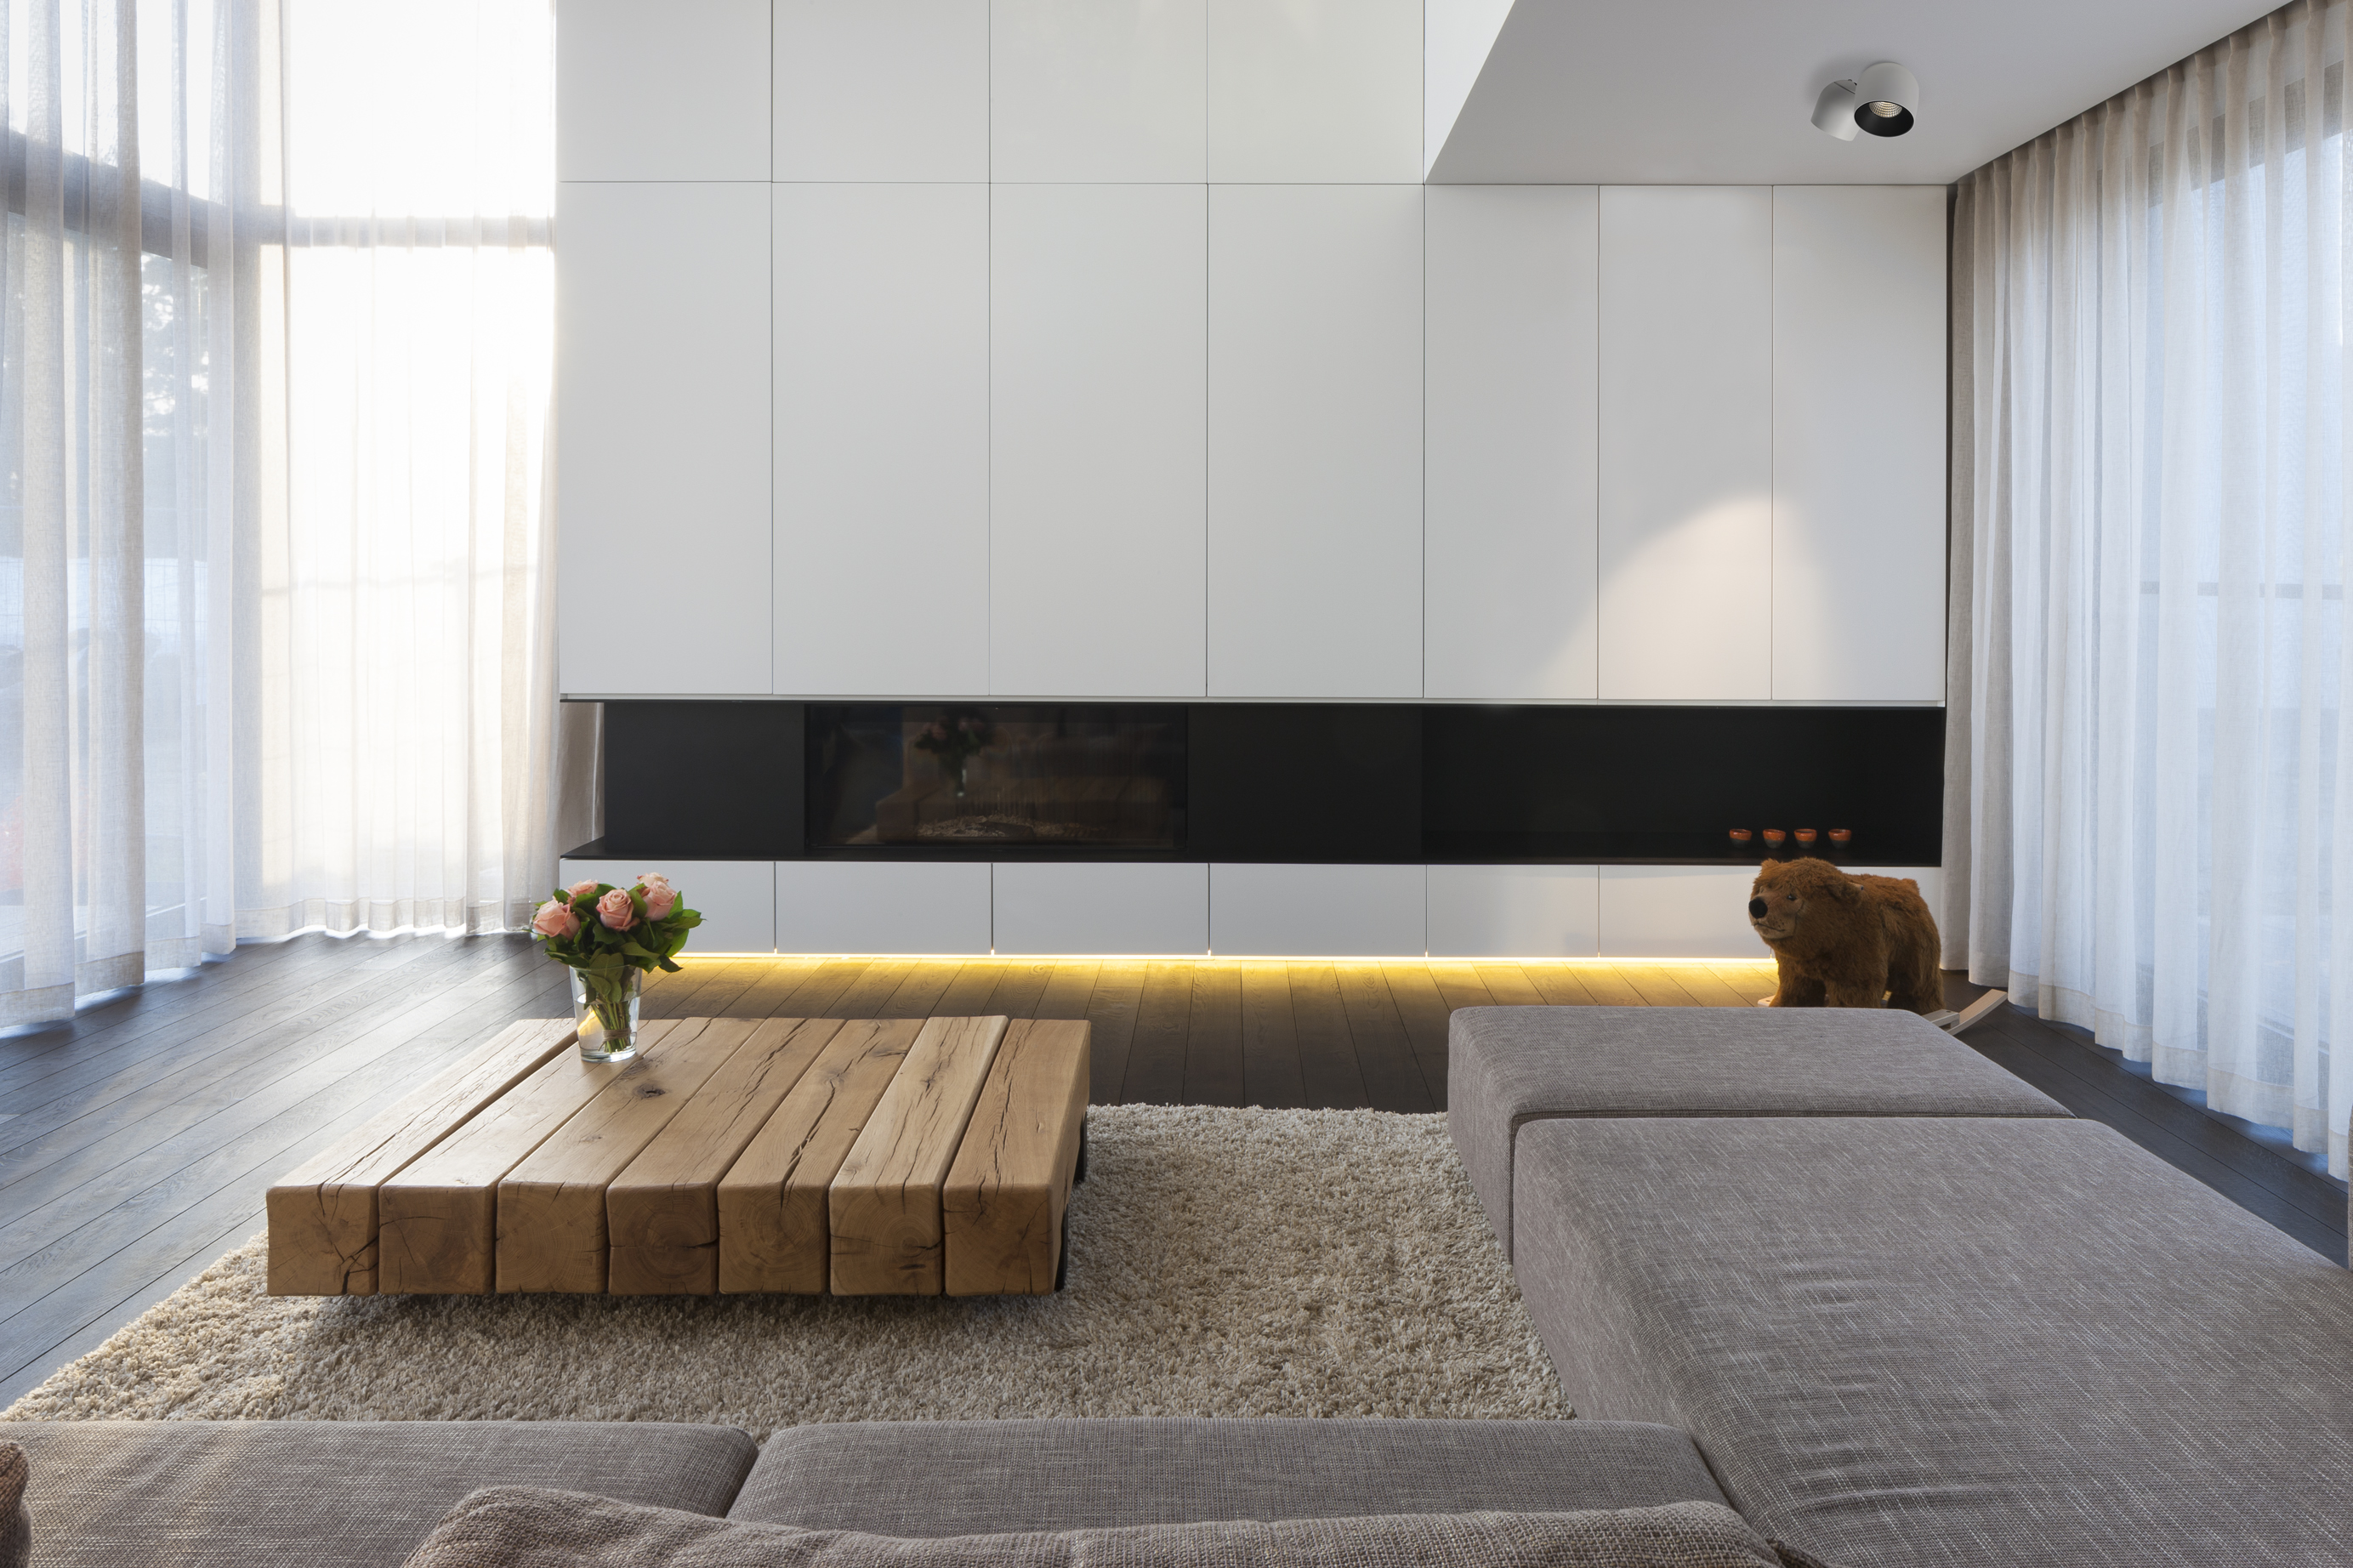 The residence woning de wa is a geometrically and clean minimal building combining modern and warm elements the noddle semi recessed fixture shows an